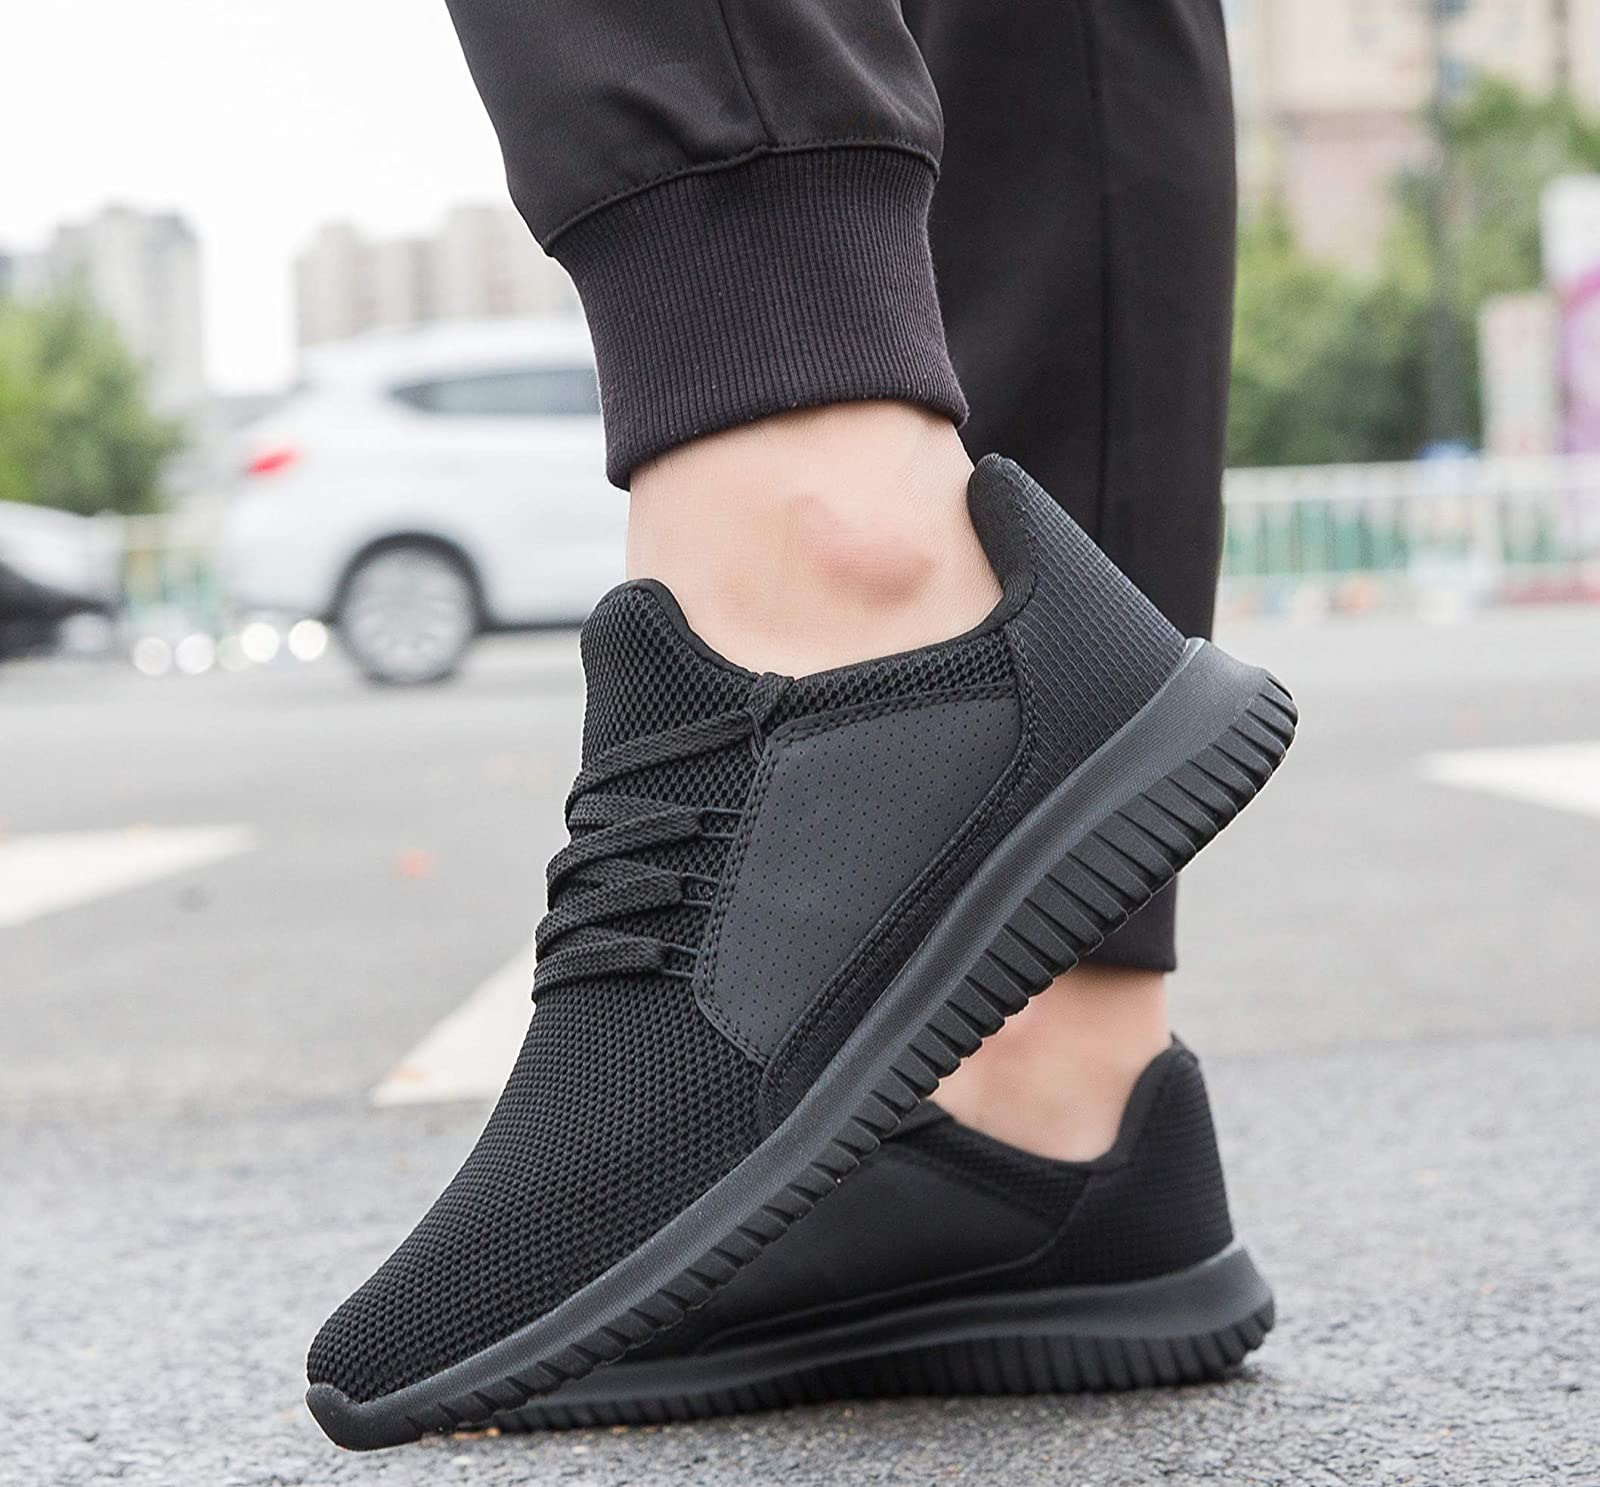 Krystory Casual Running SneakersMen and Women Breathable - 5